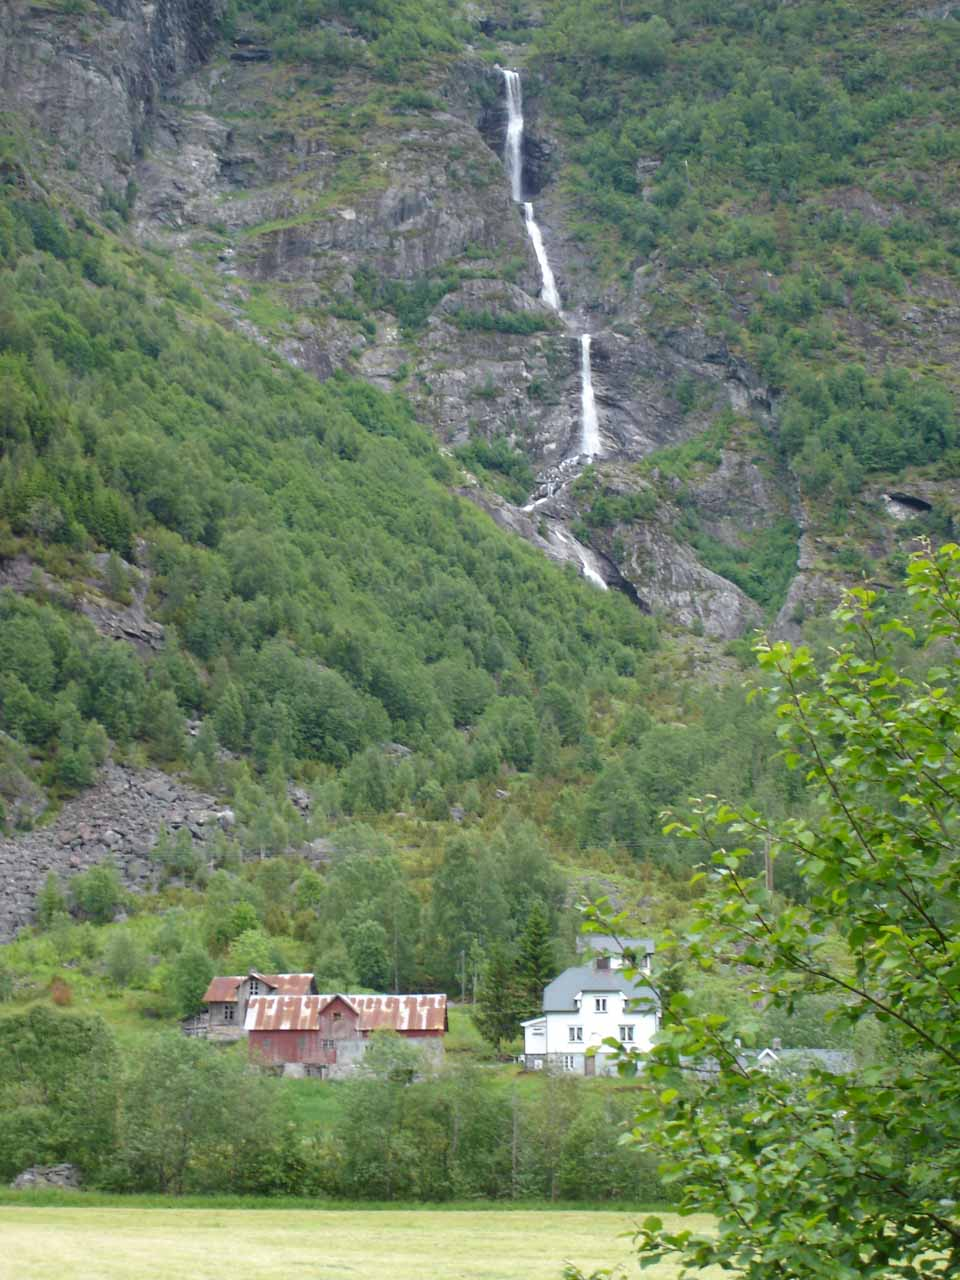 Yet another waterfall in Jostedalen.  This one was thin and tall and it was the backdrop behind the farms and homes seen in the foreground of this photo